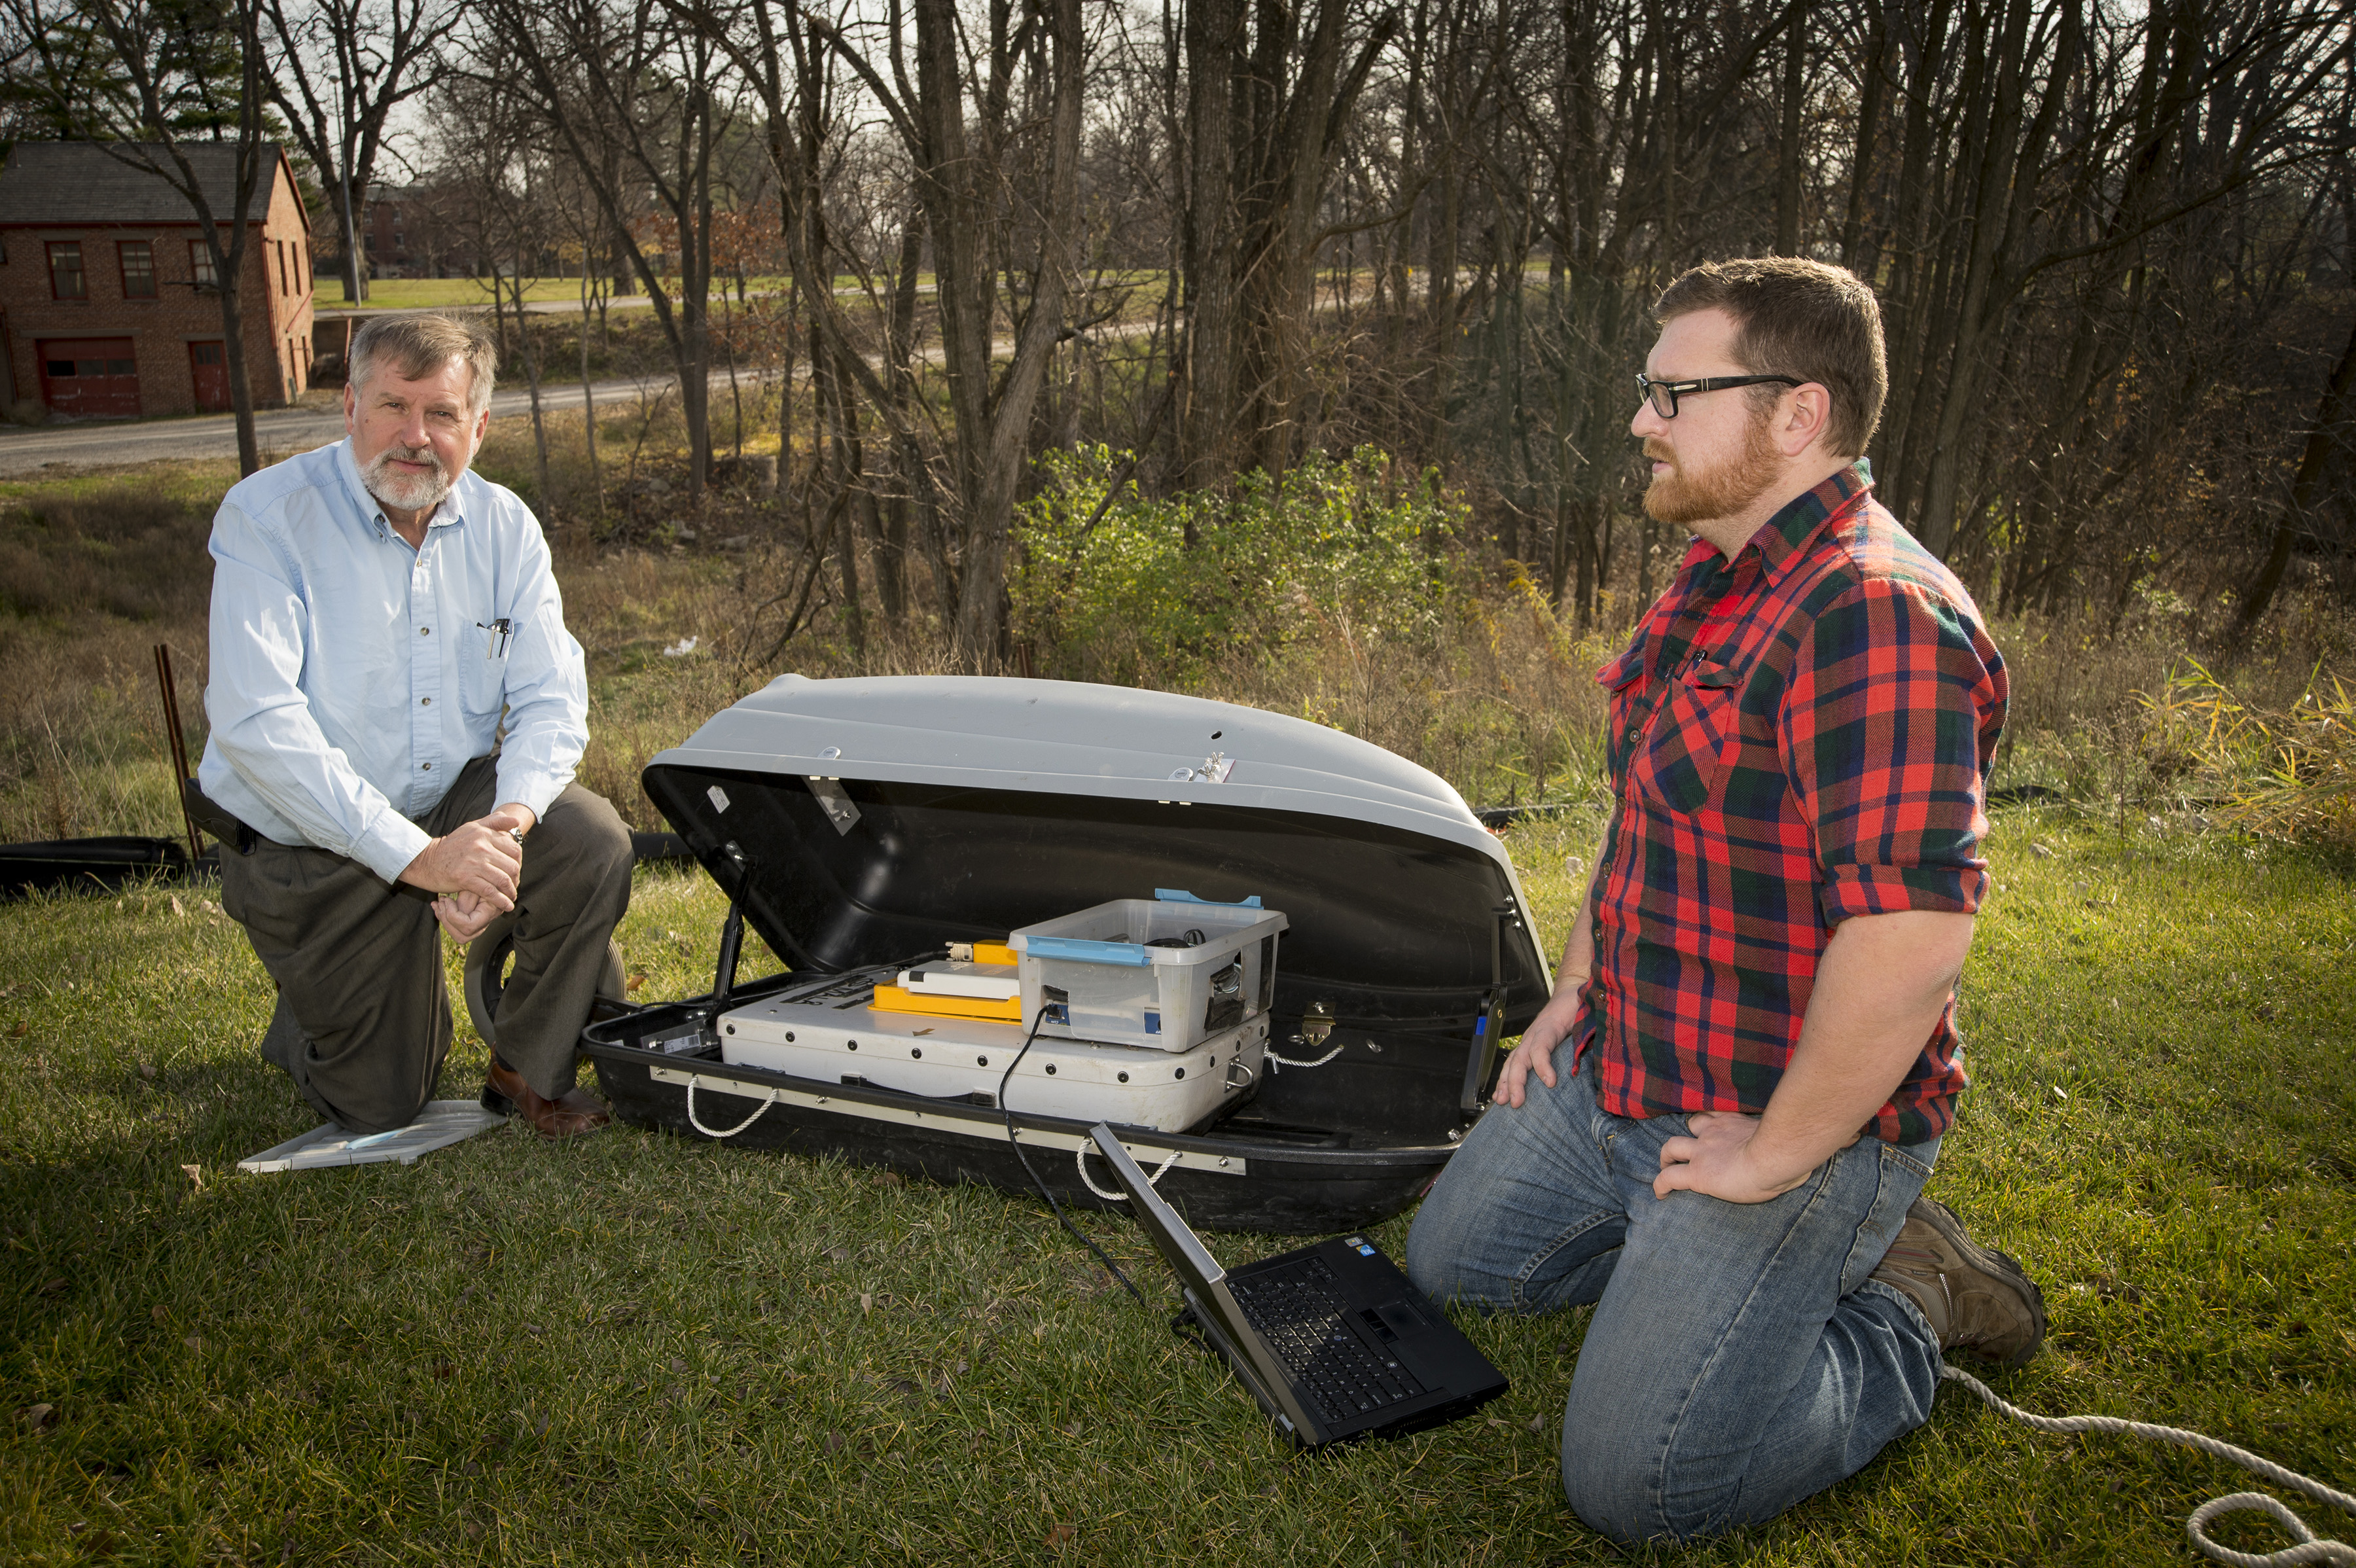 IIHR Research Engineer Frank Weirich (left) and student Phil Kerr with the ground-penetrating radar unit.